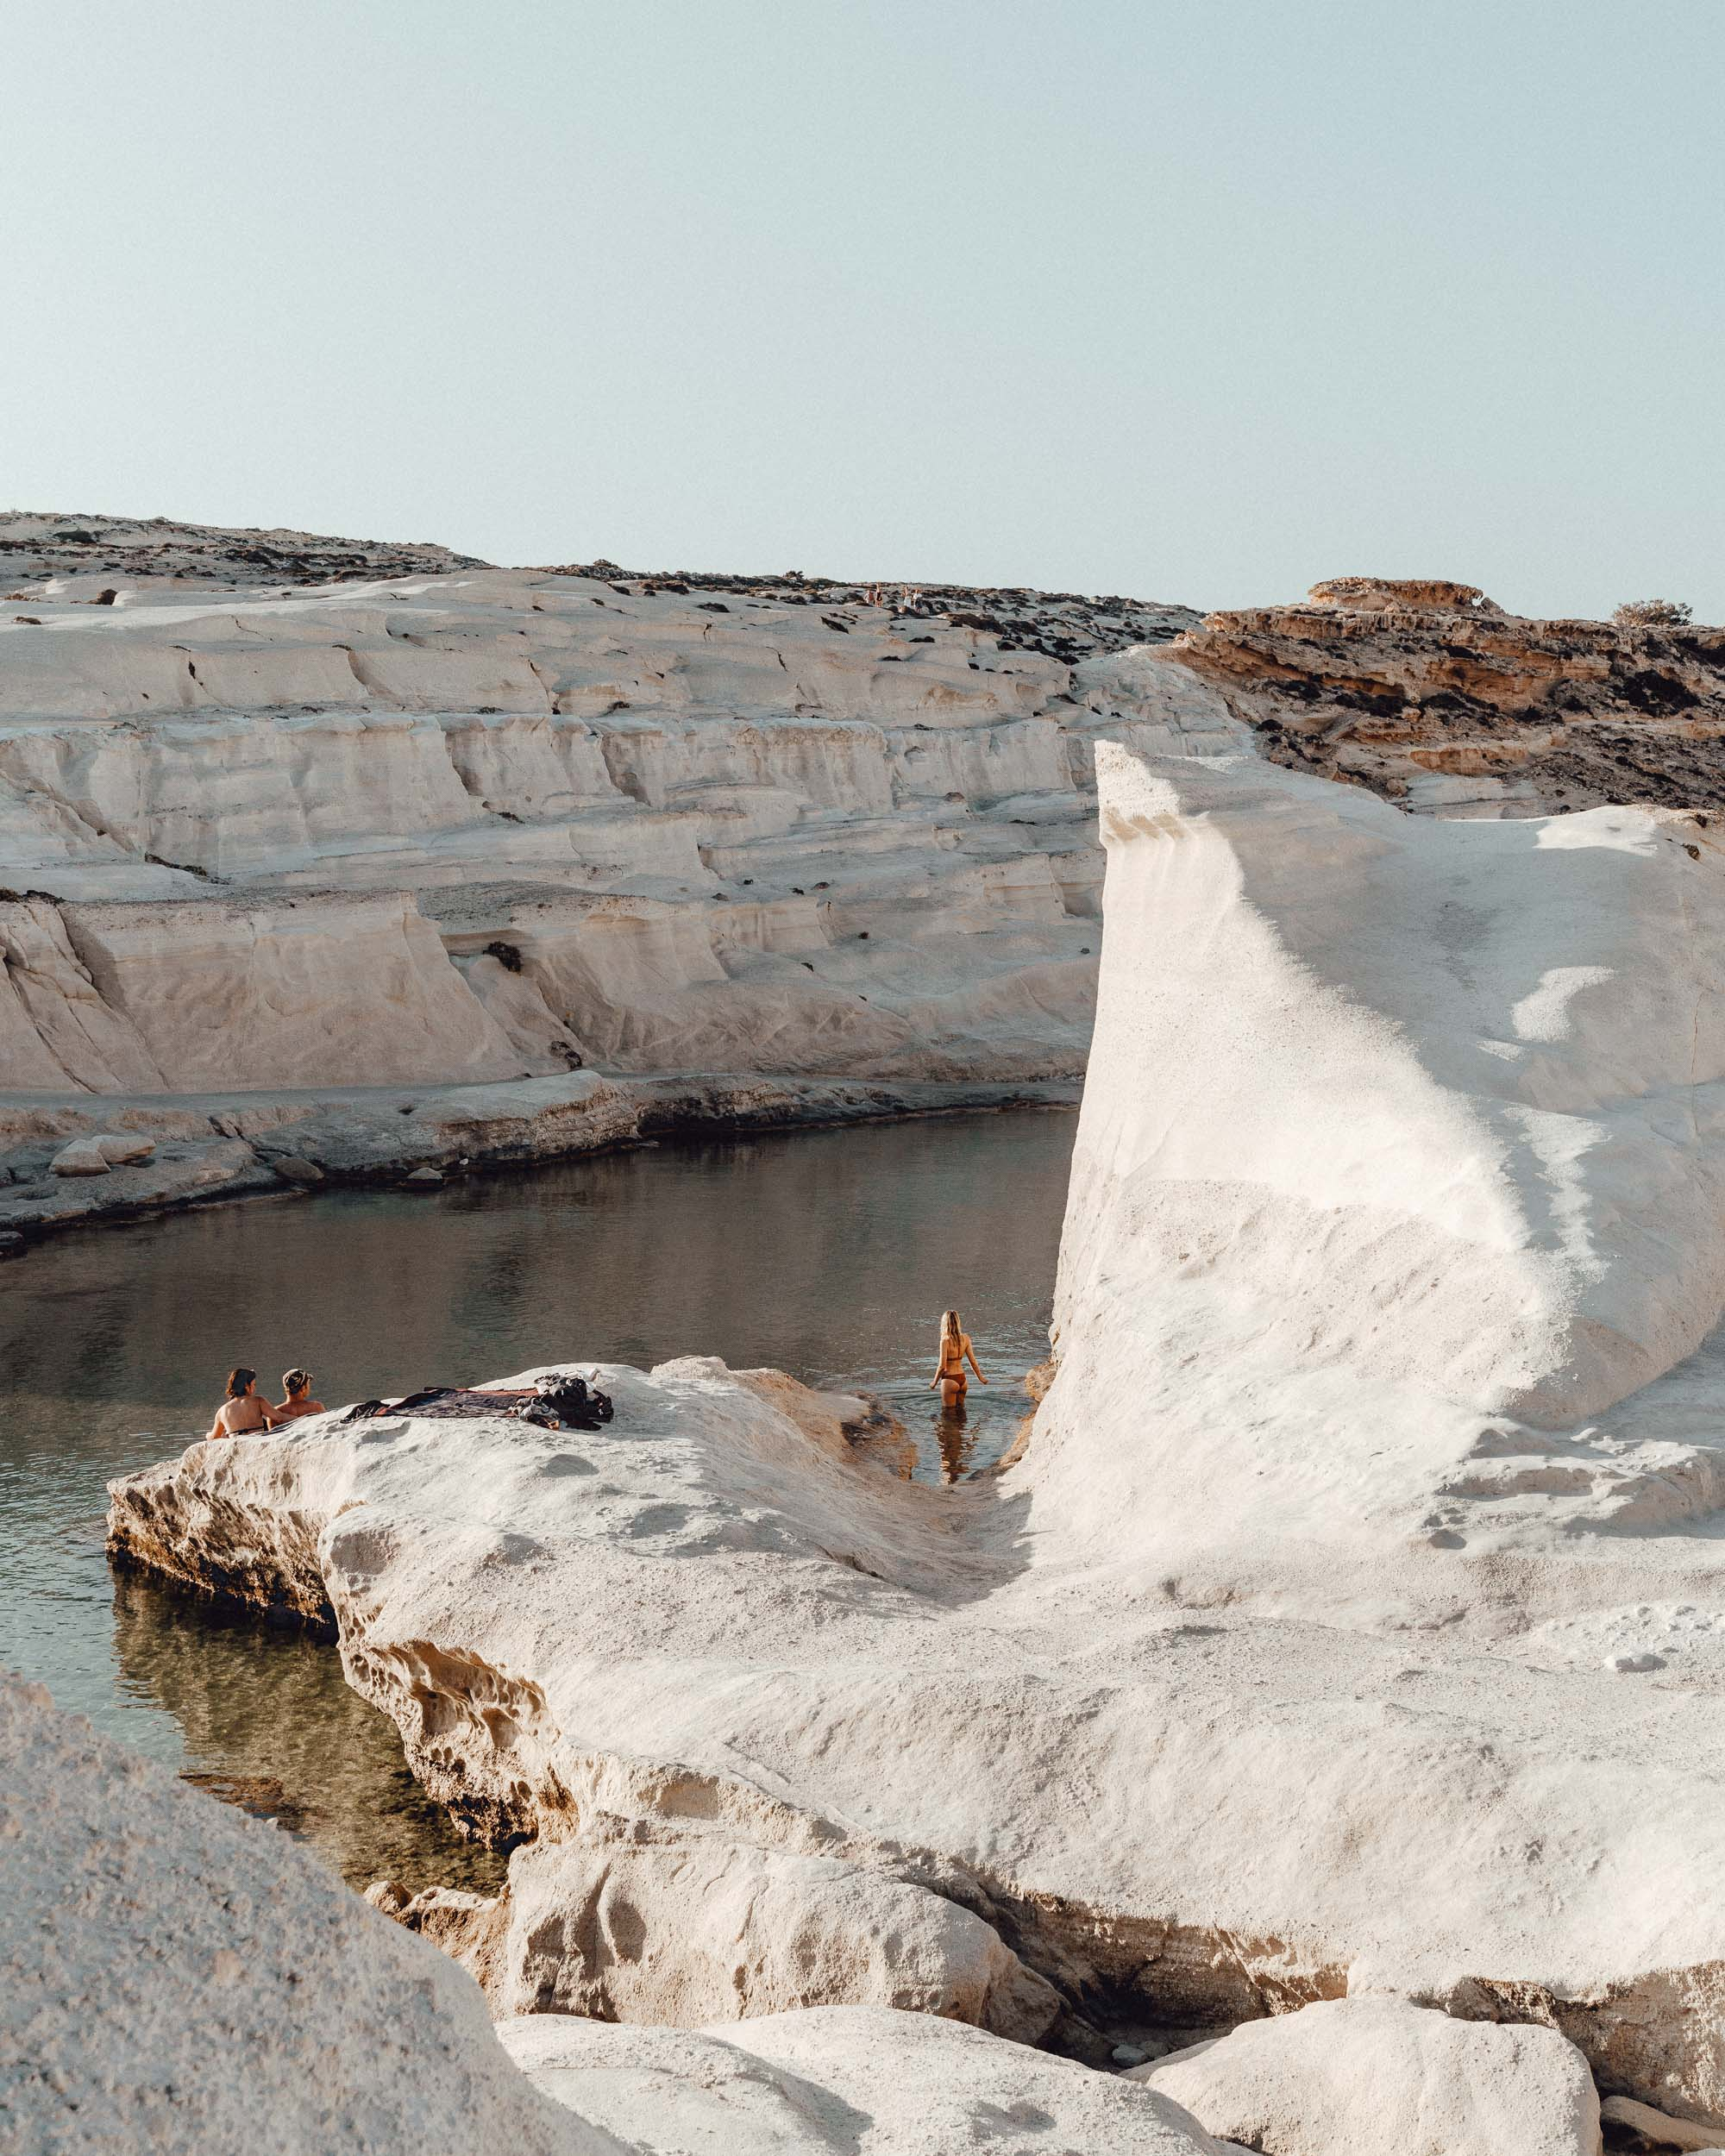 Sarakiniko white beach in Milos, Greek Islands via @finduslost